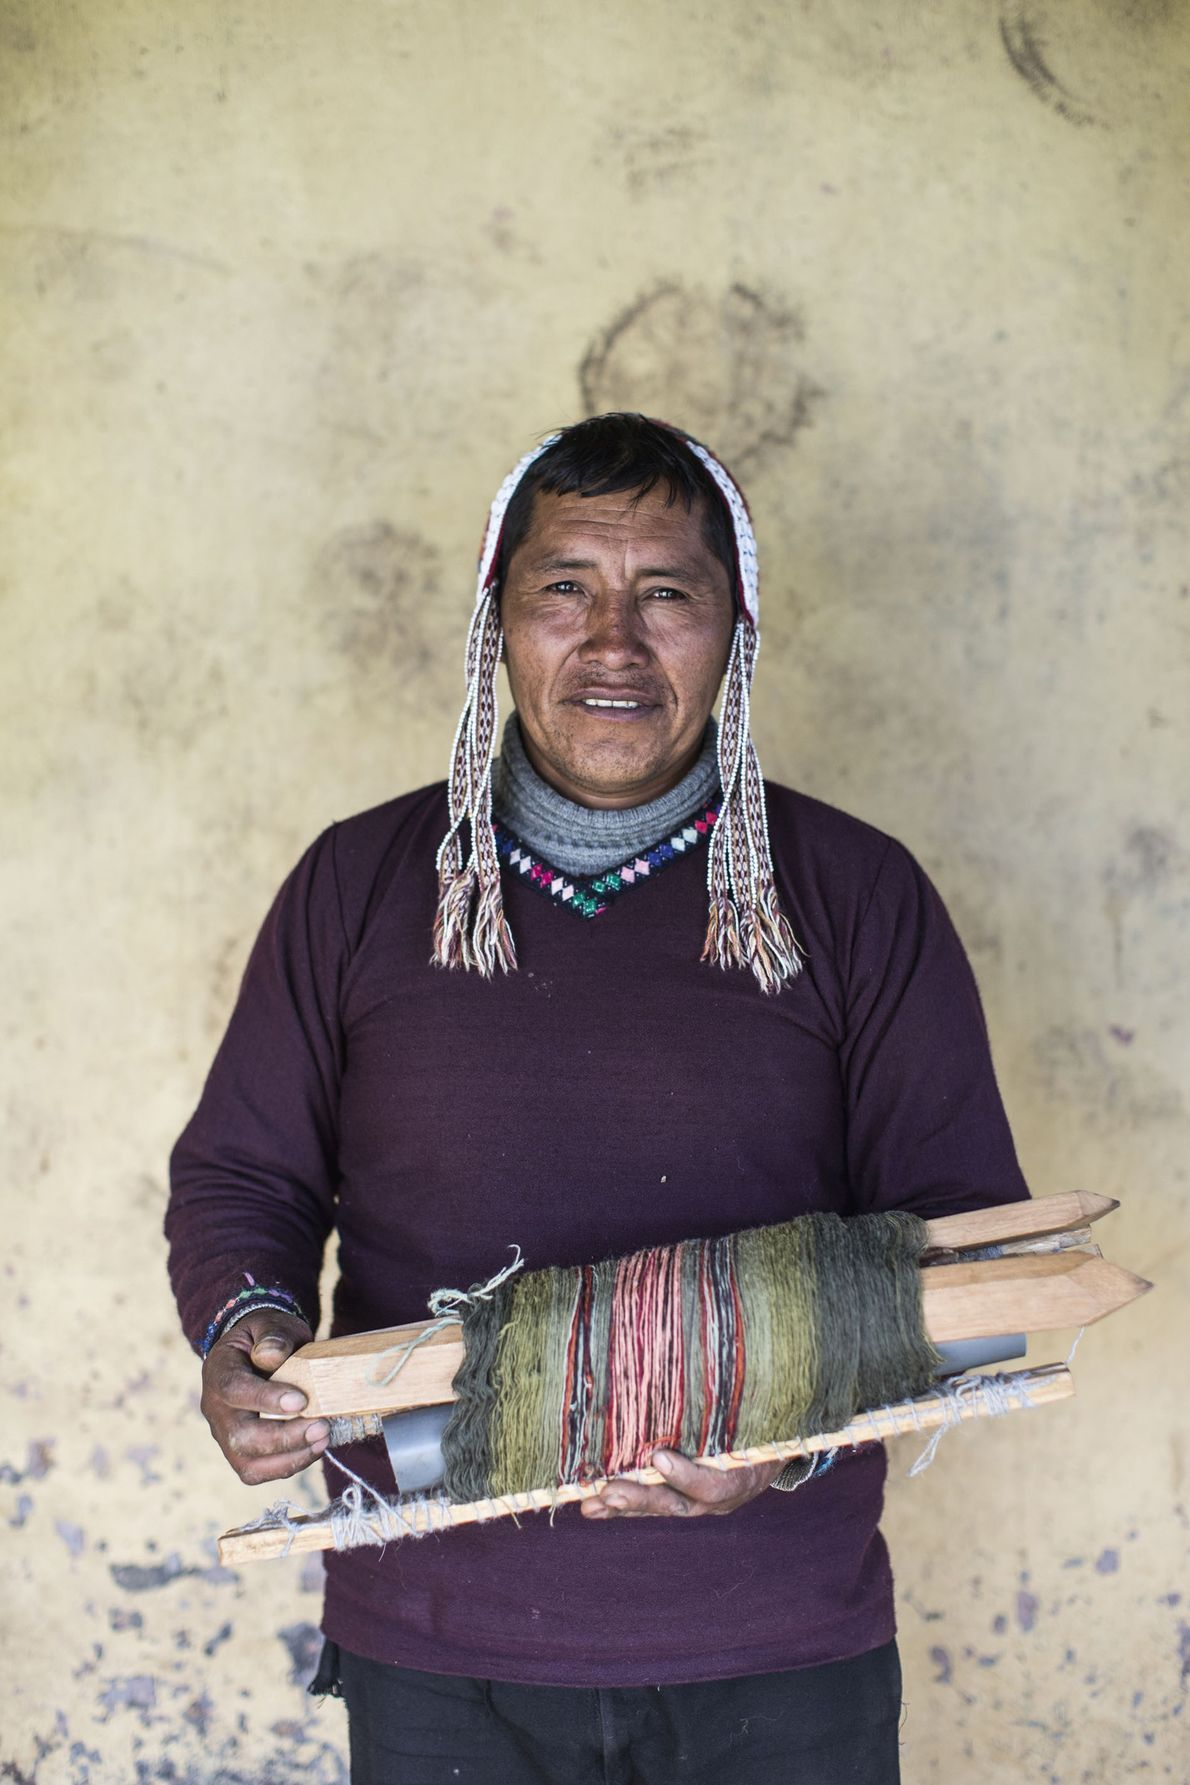 Holding woven fabric made traditionally